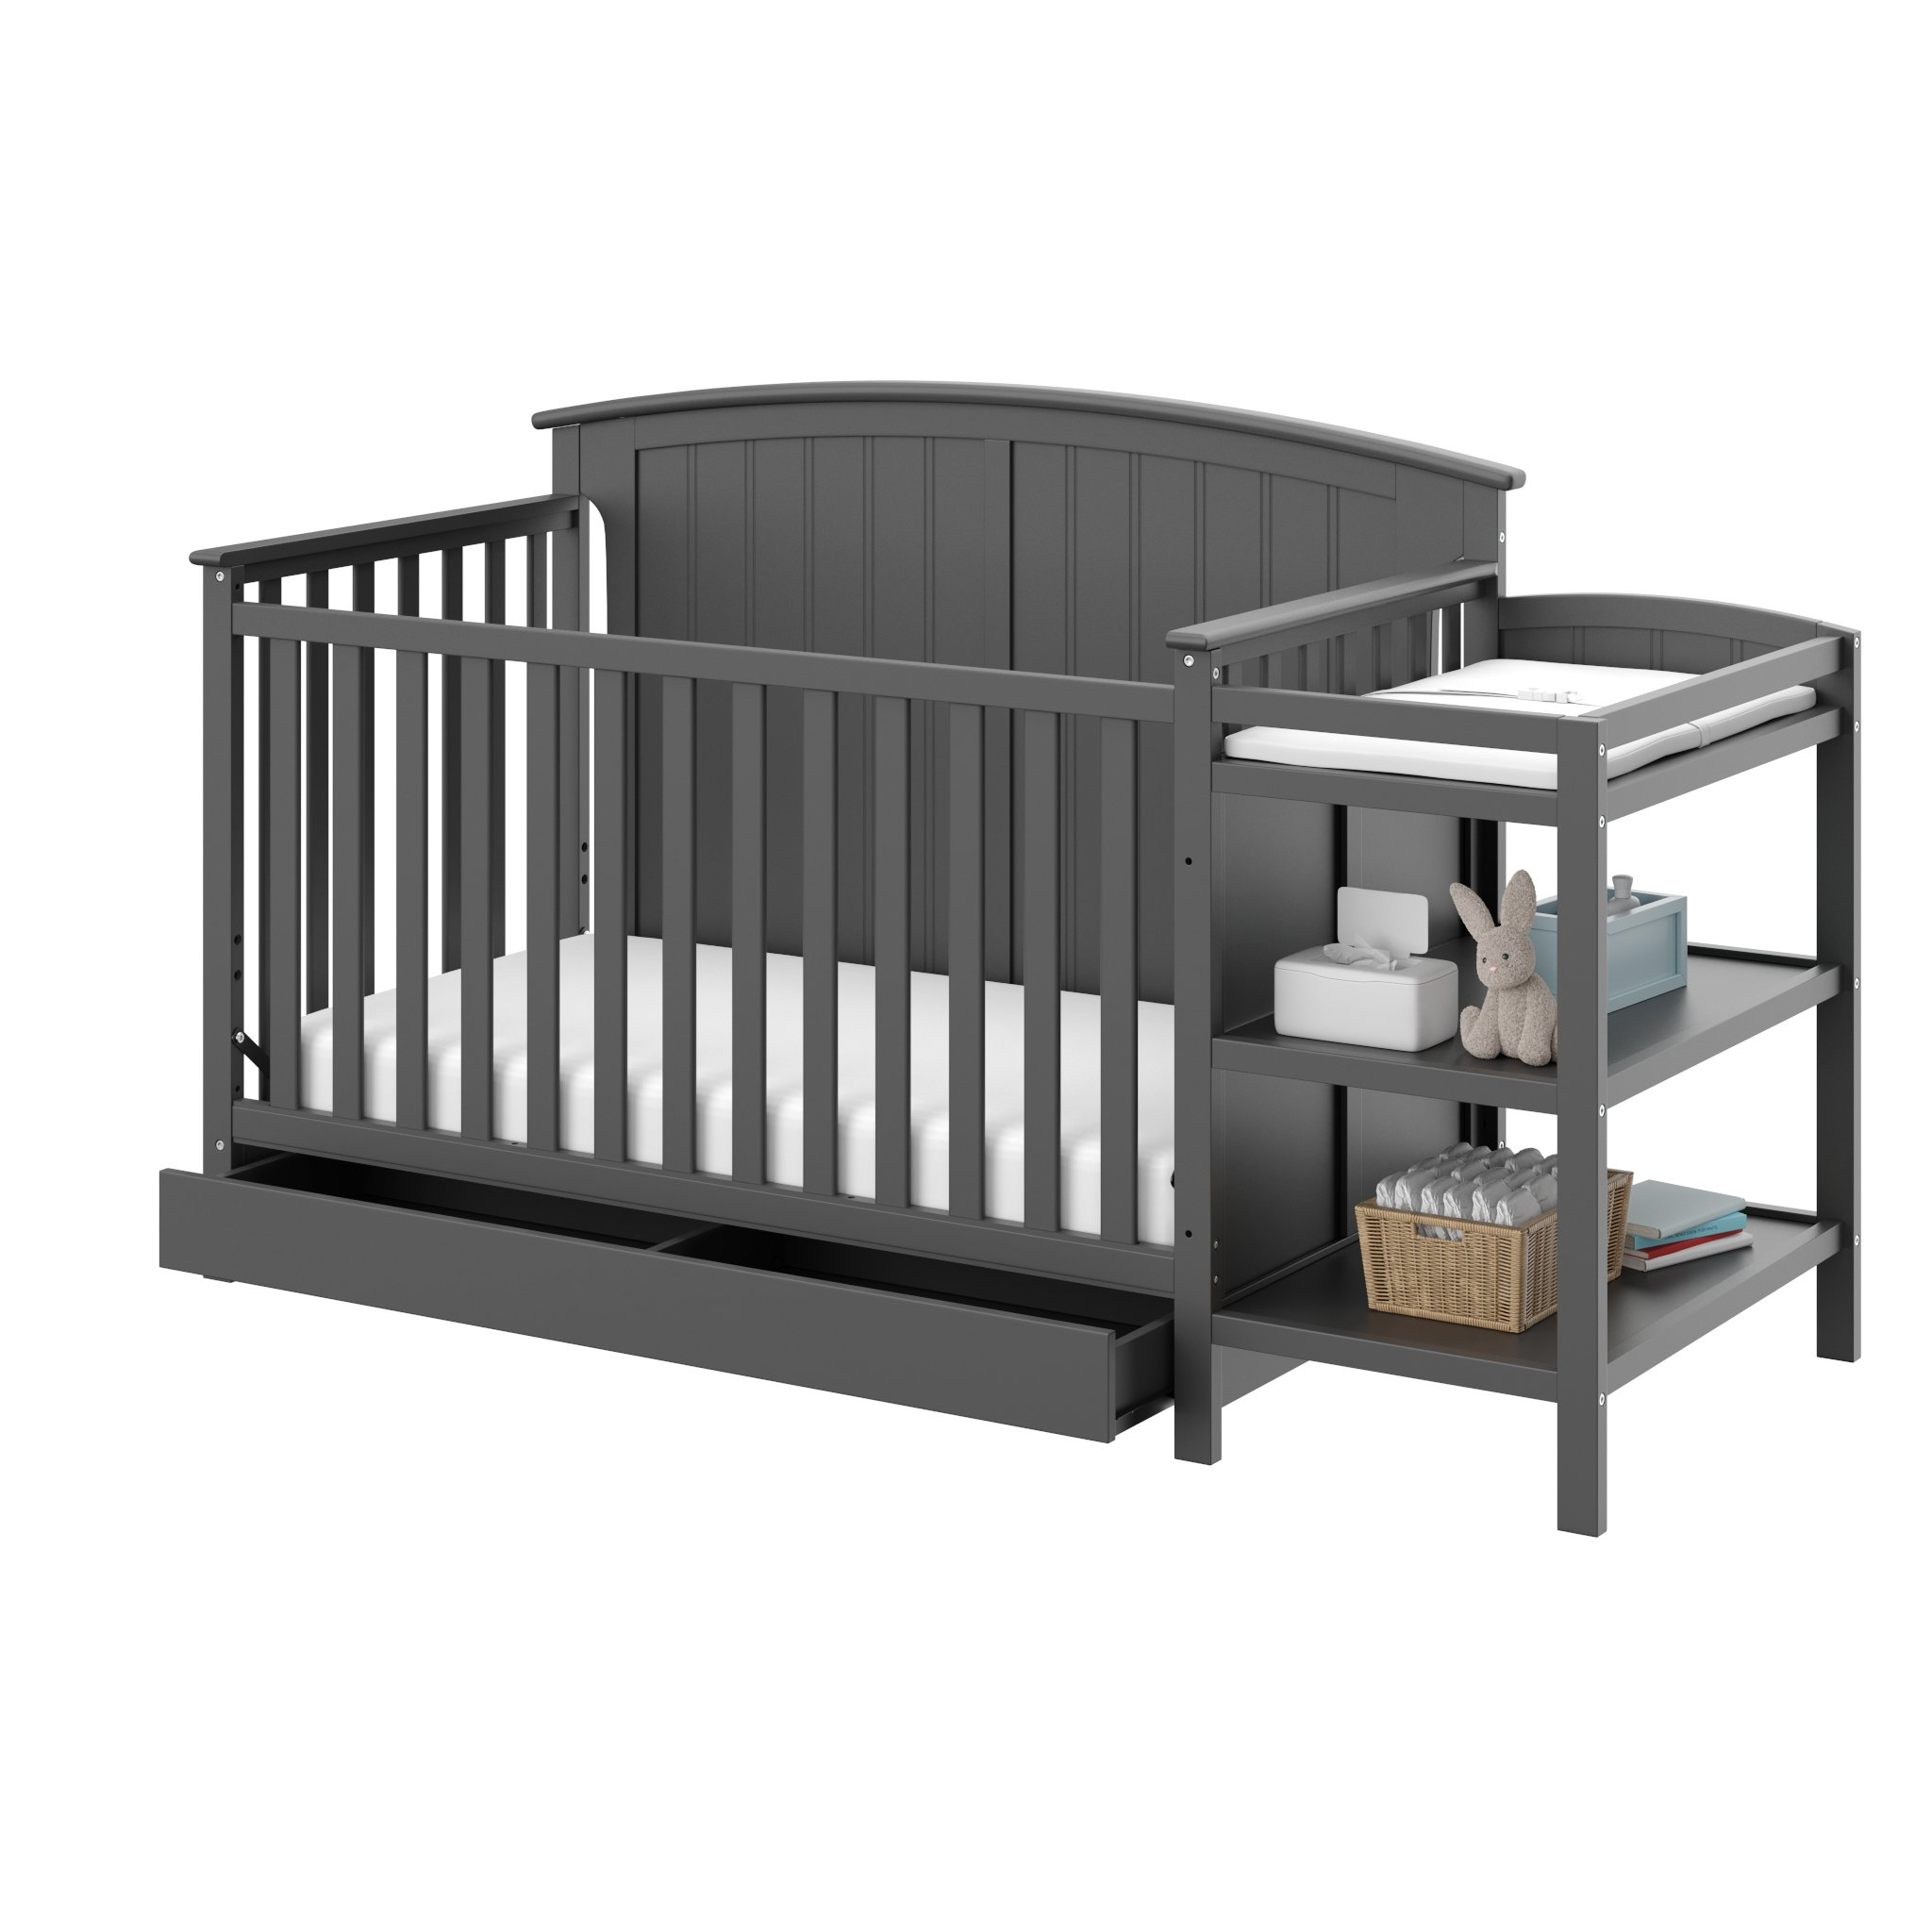 5 Cool Cribs That Convert To Full Beds: Amazon.com: Storkcraft Avalon 5-Drawer Universal Dresser